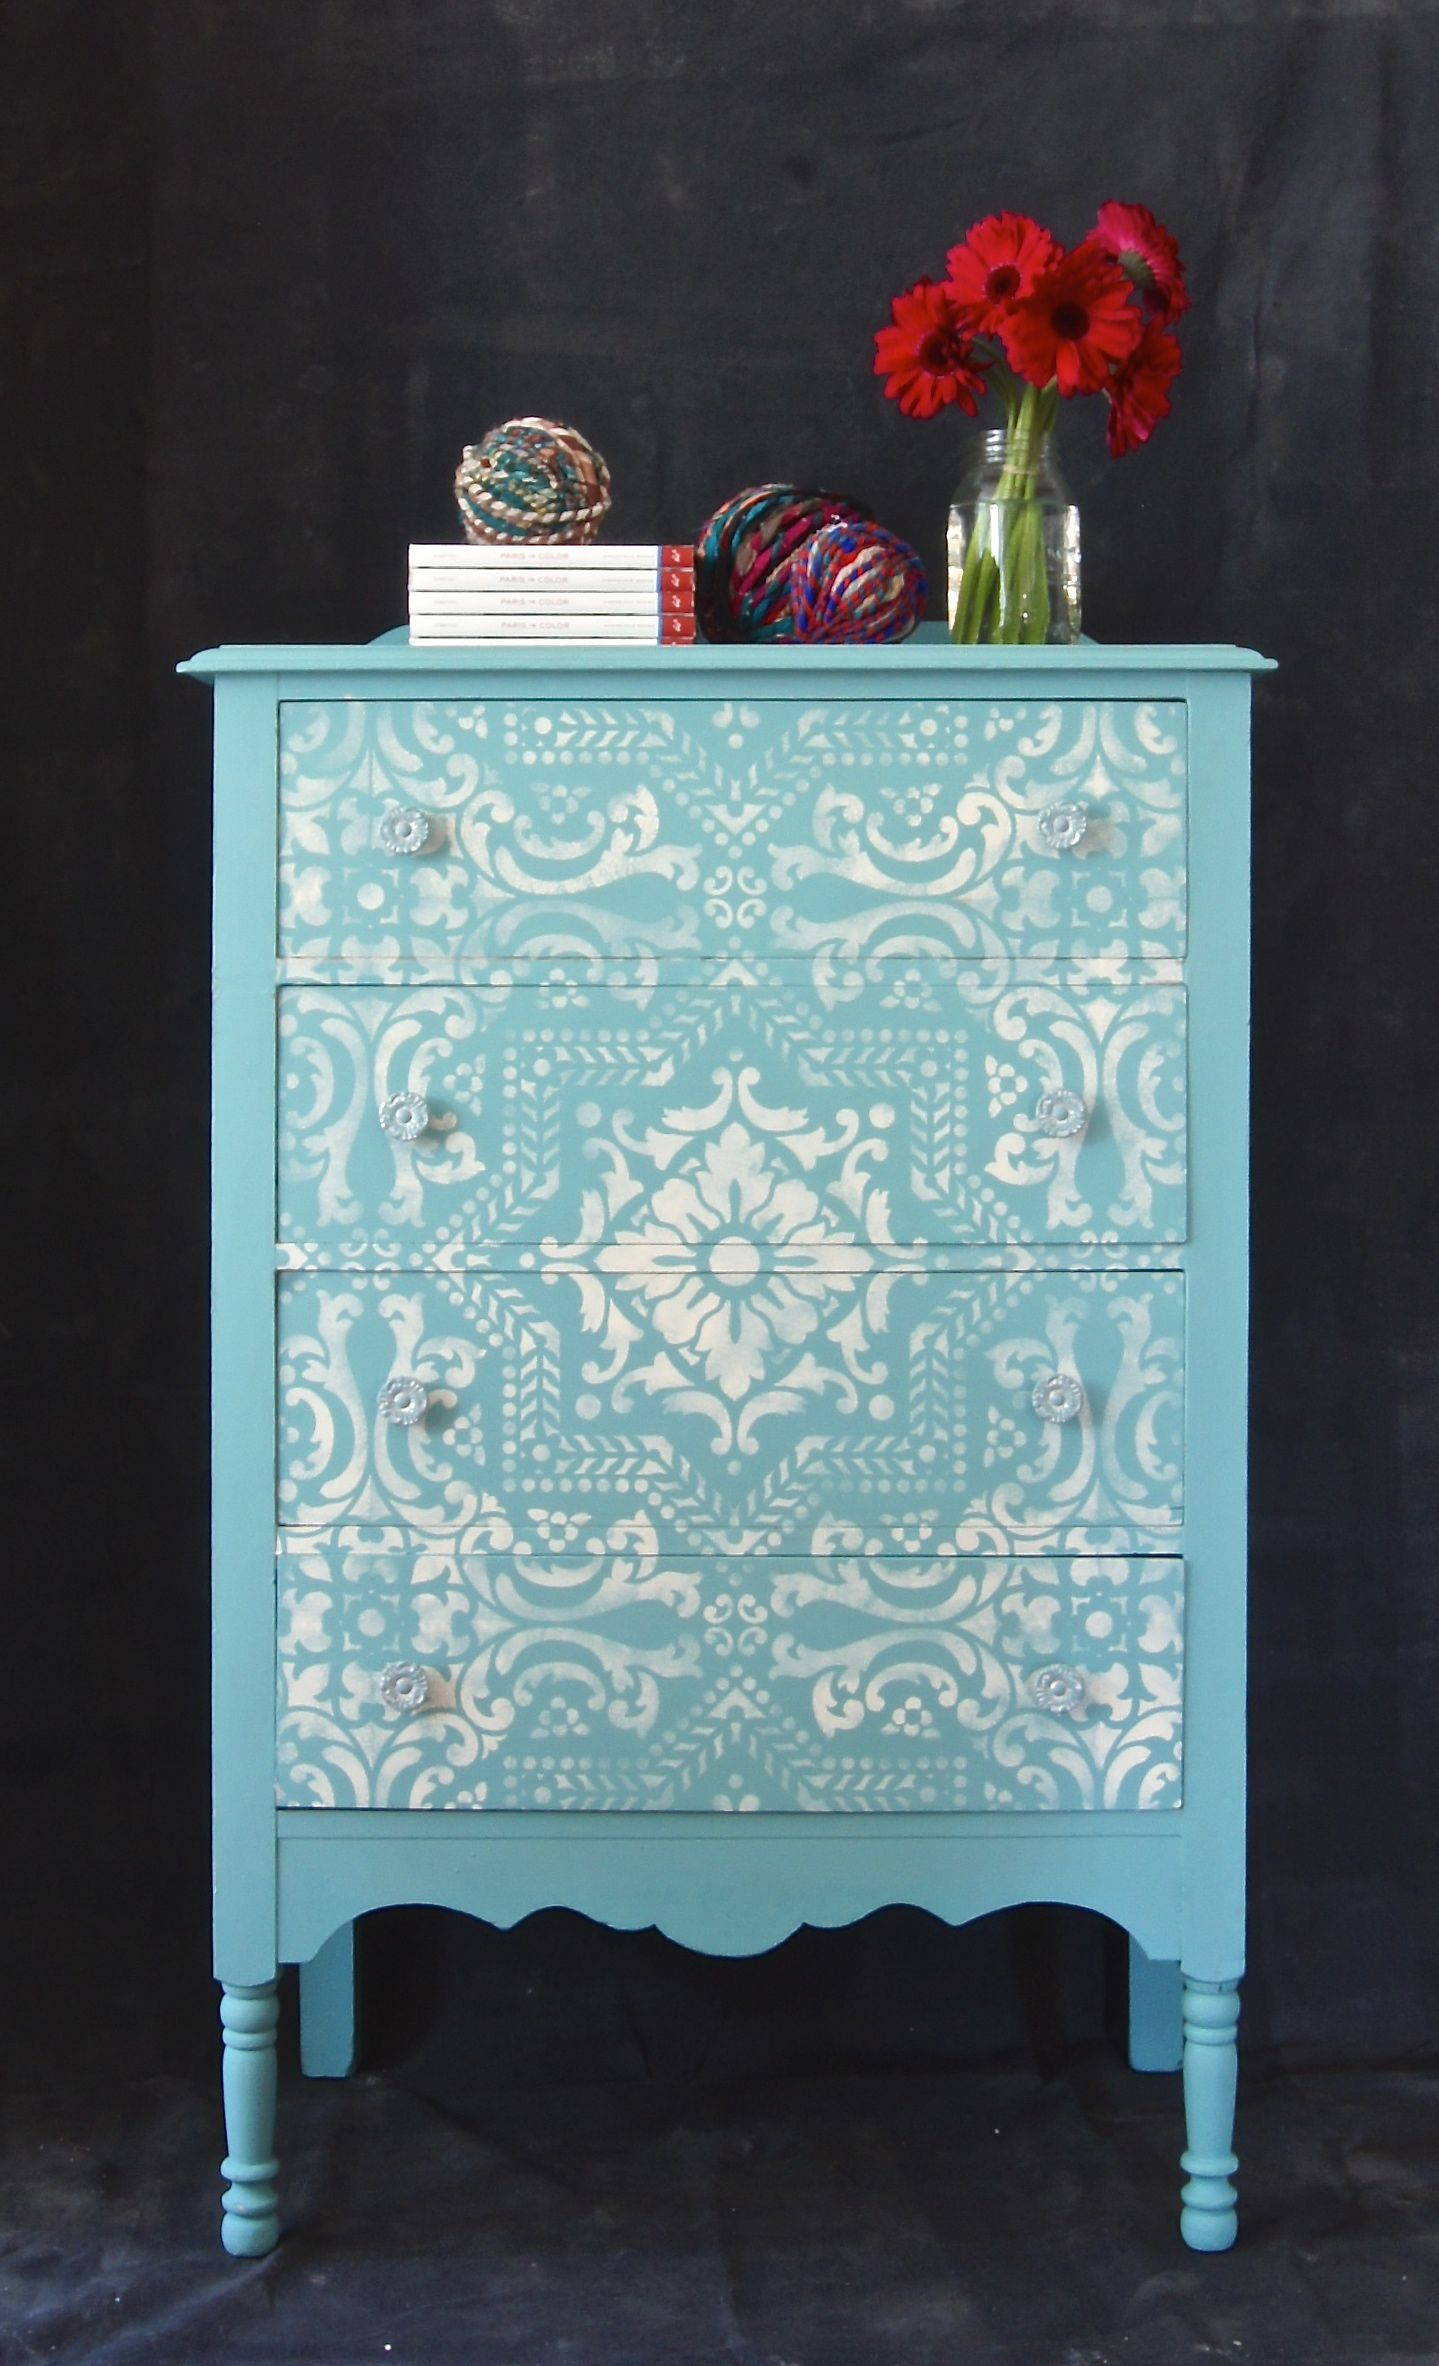 Tiffany blue mediterranean painted and stenciled beauty provence our lisboa tile stencil is a beautiful classic tile stencil design inspired by the portuguese tiles known as azulejos that line the walls of lisbon amipublicfo Image collections